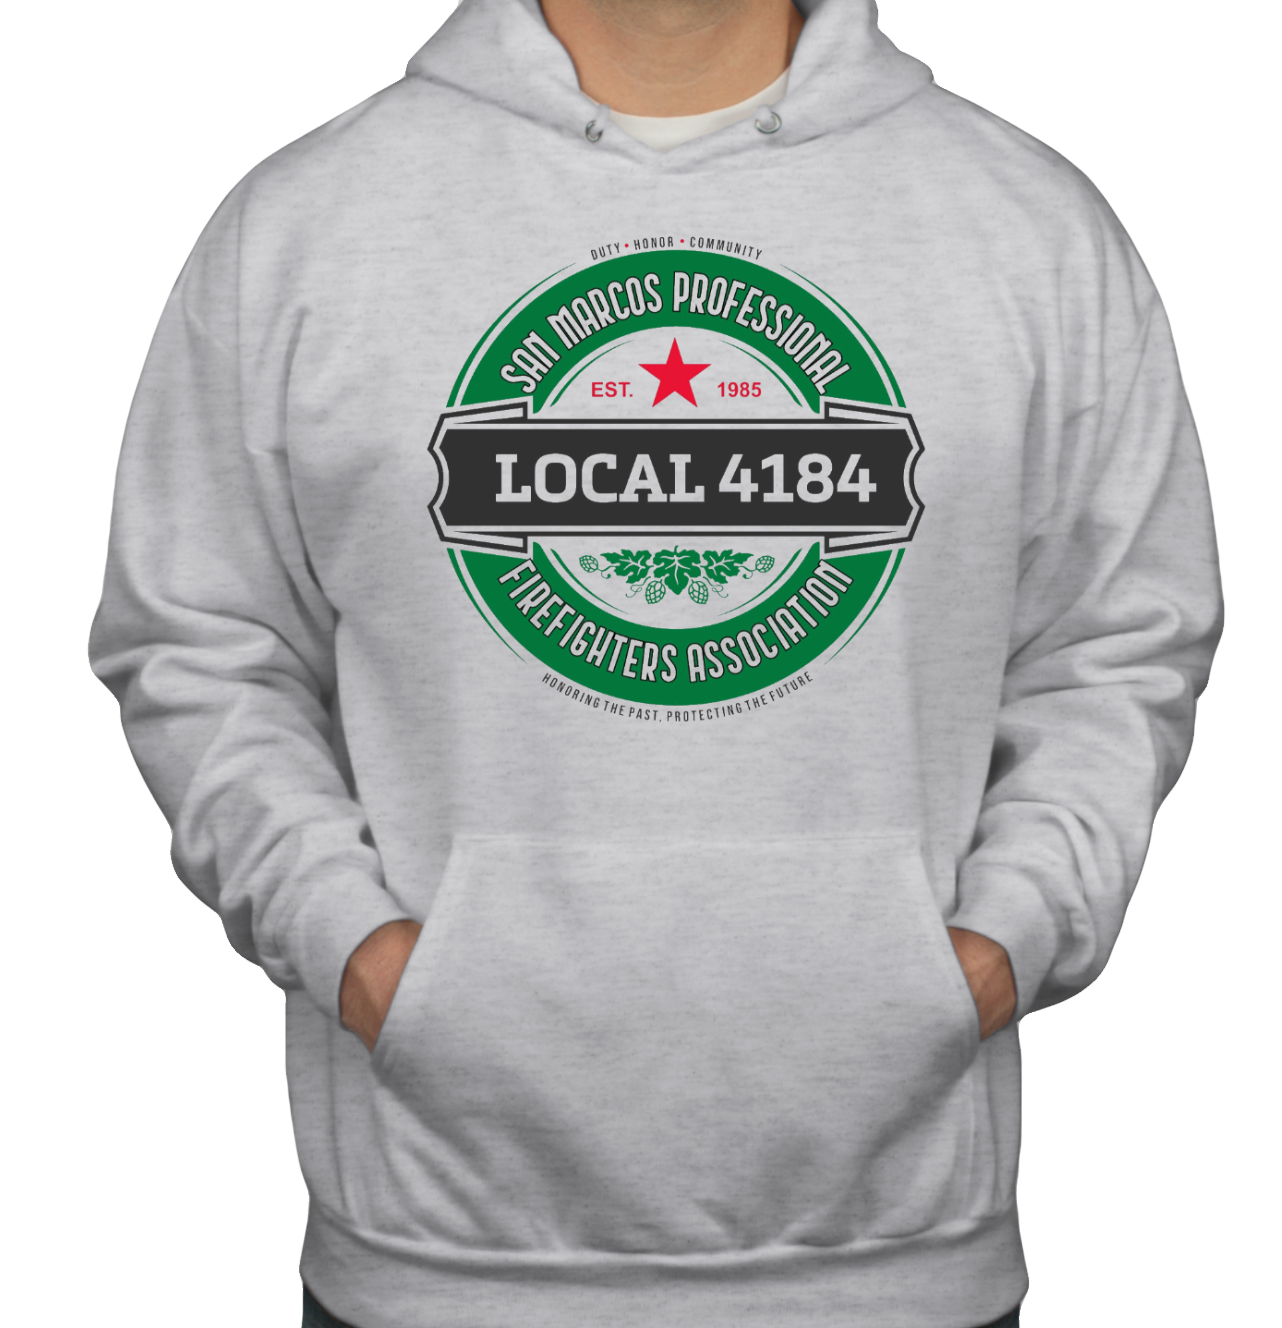 Hoodie #1 front